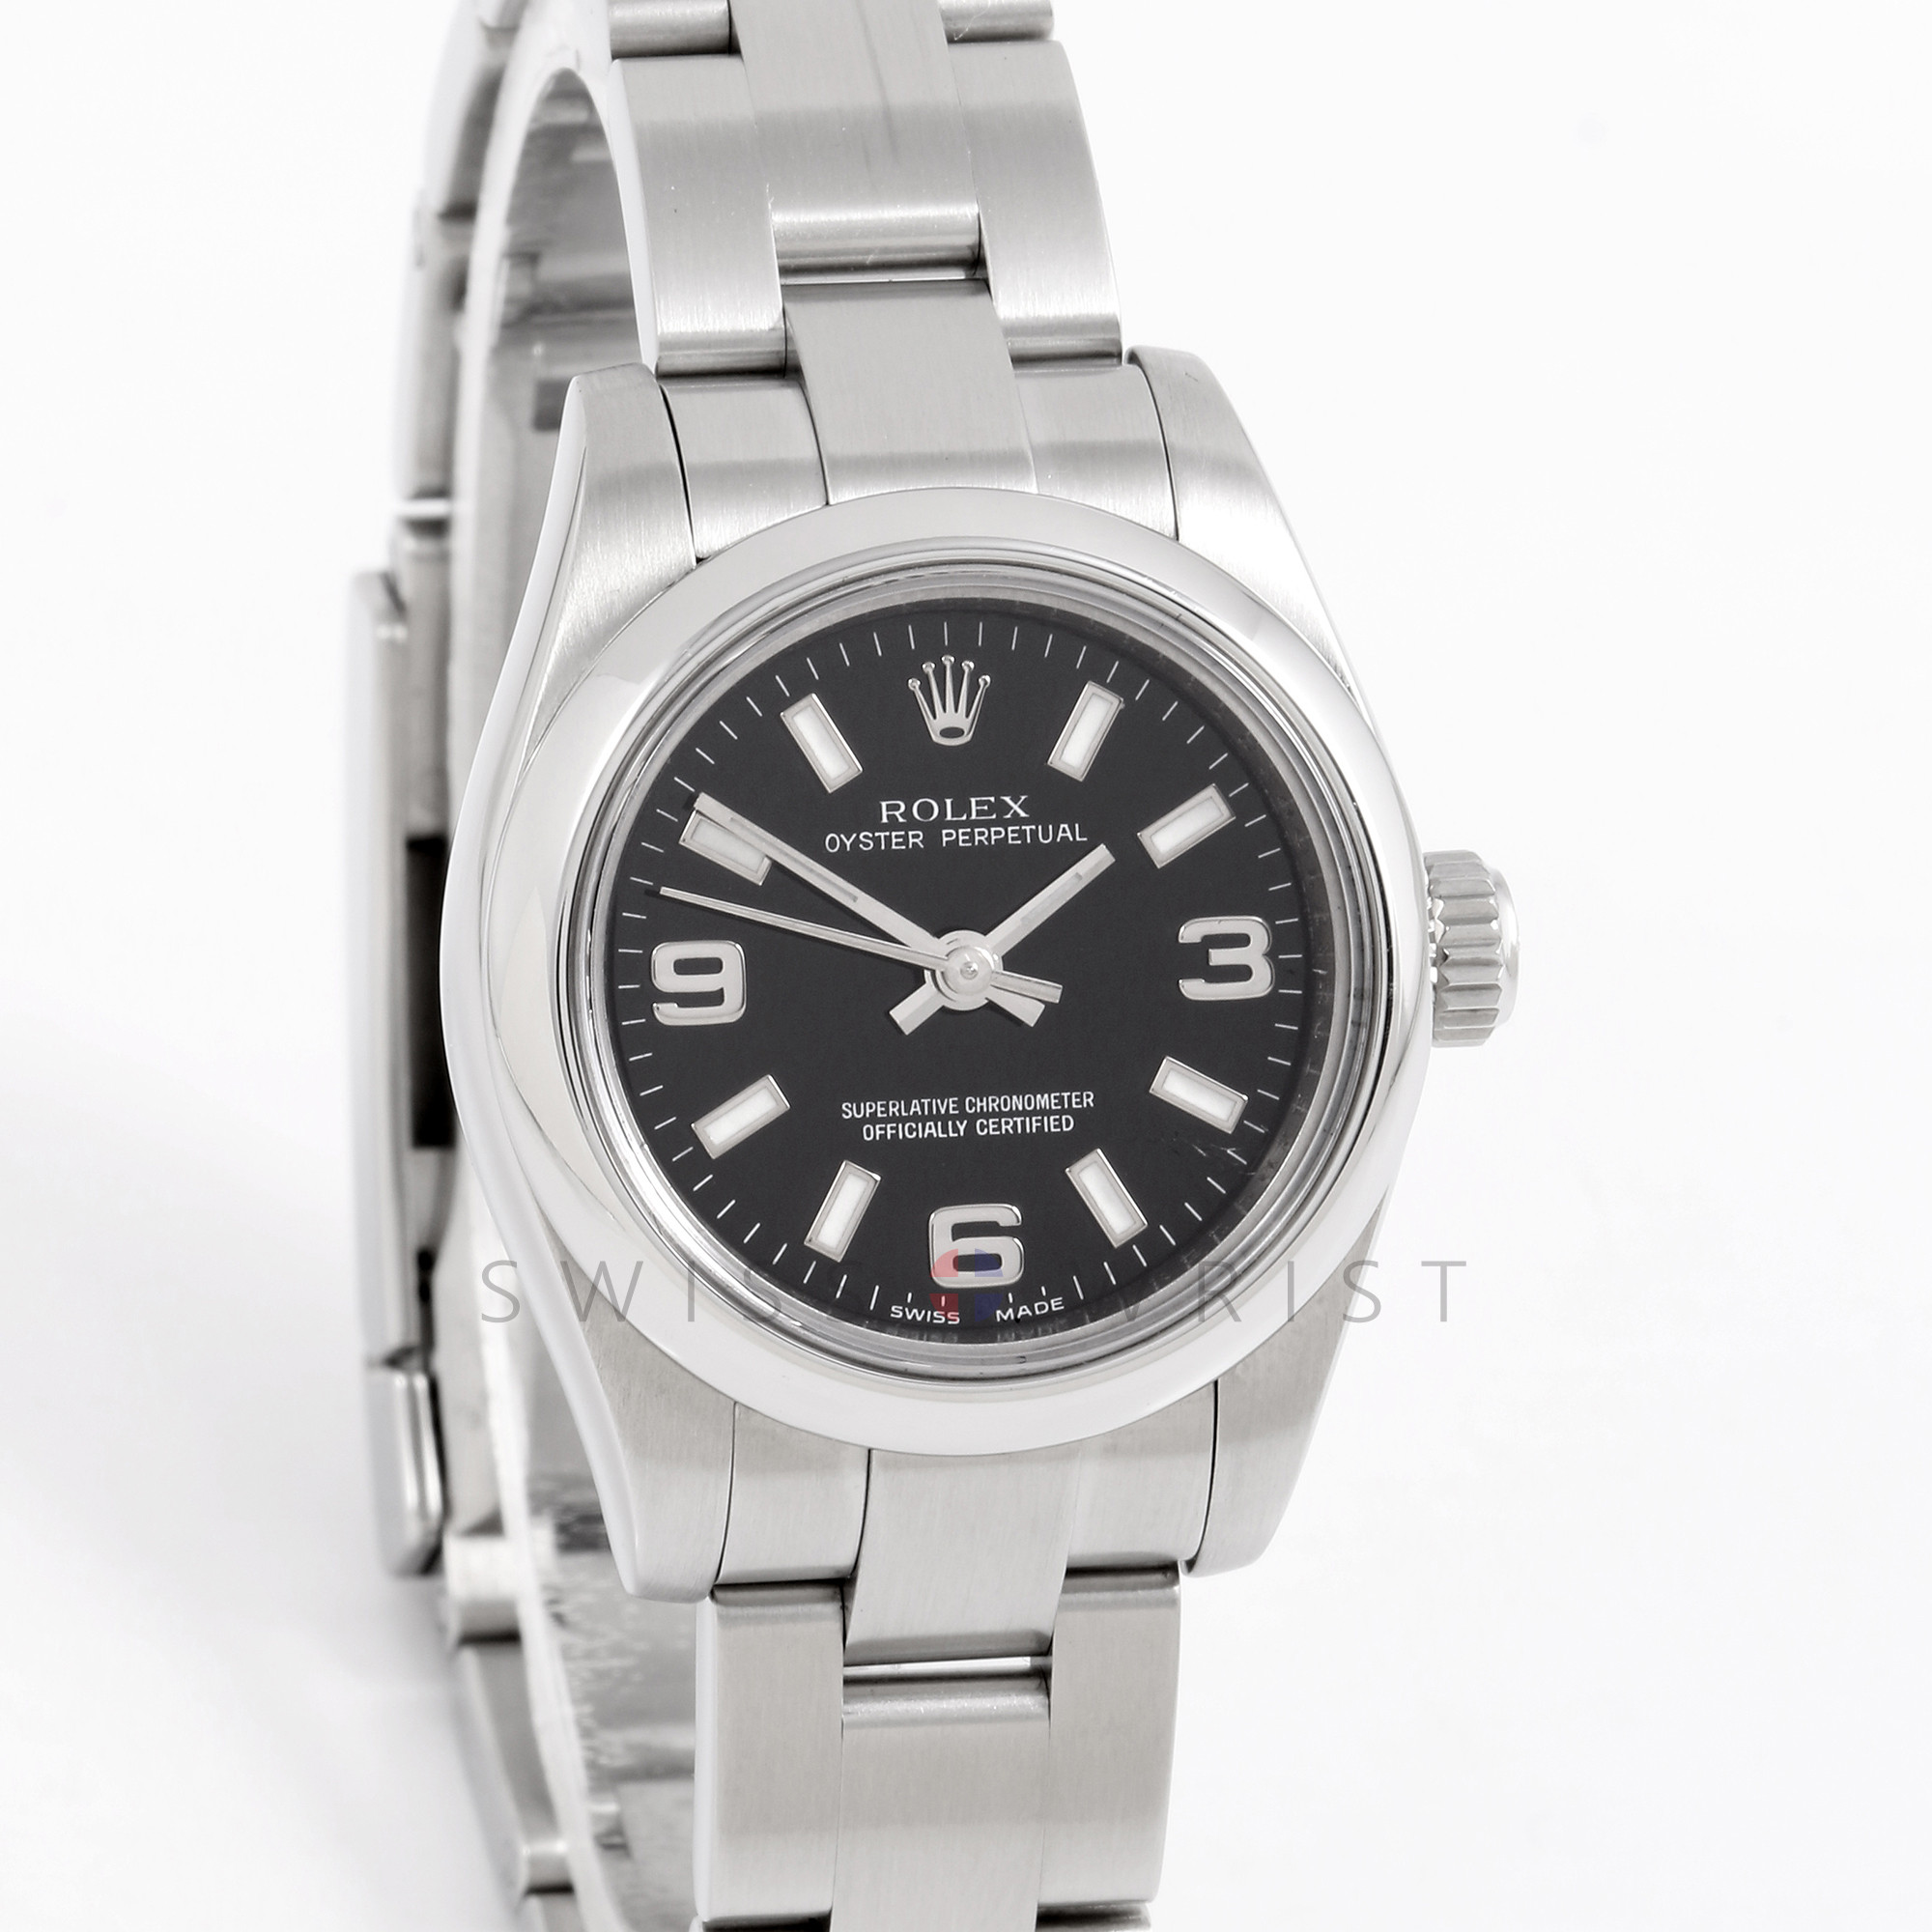 Rolex 176200 Ladies Oyster Perpetual 26mm Stainless Steel w/ Black Dial and Smooth Bezel with Oyster Bracelet - Pre-Owned